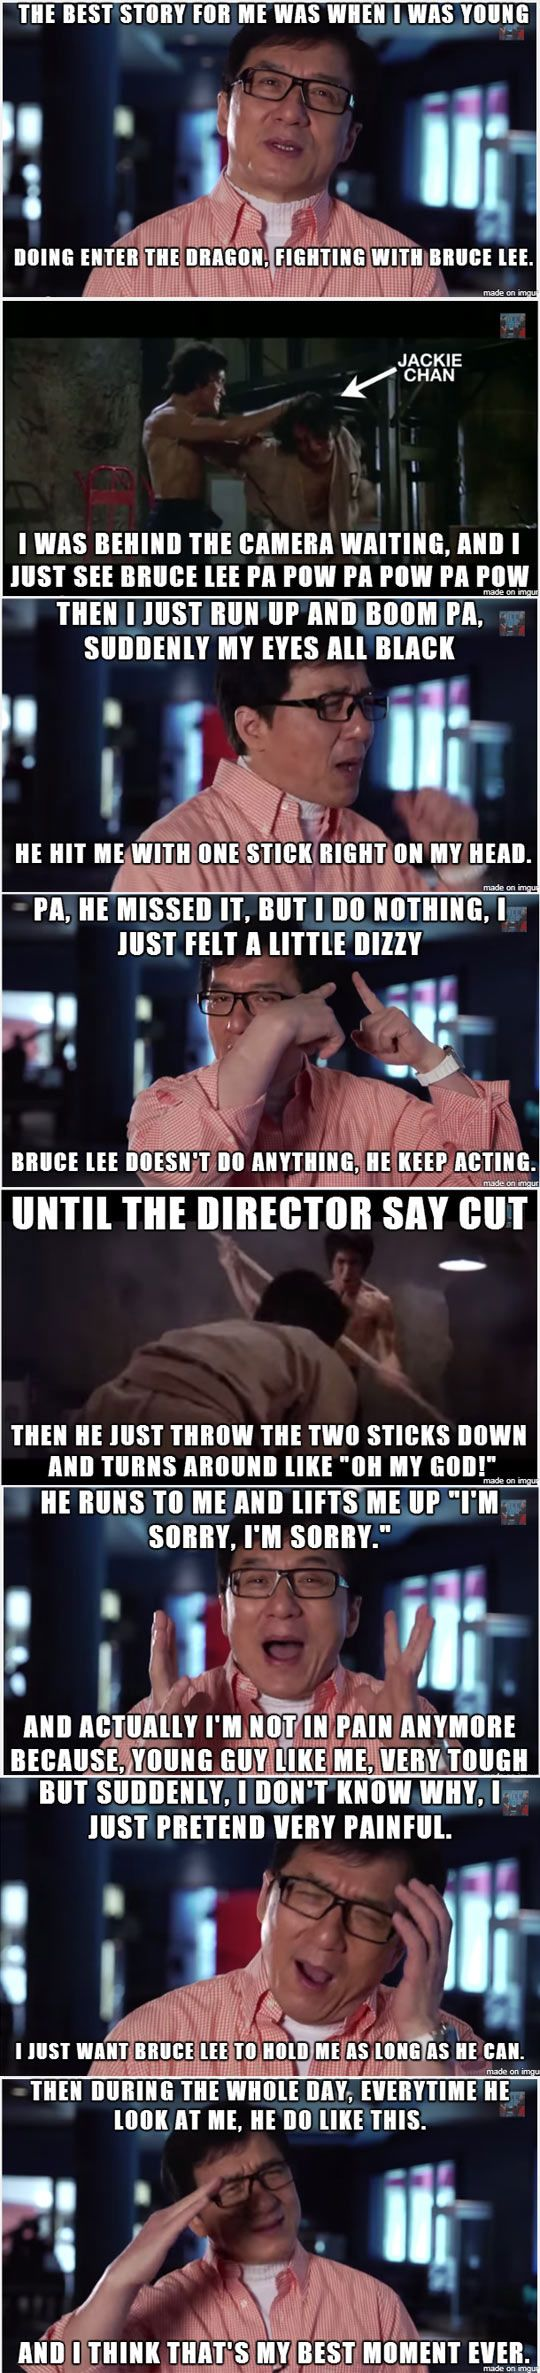 And that, folks, is how Jackie Chan became a star by making Bruce feel really guilty.....